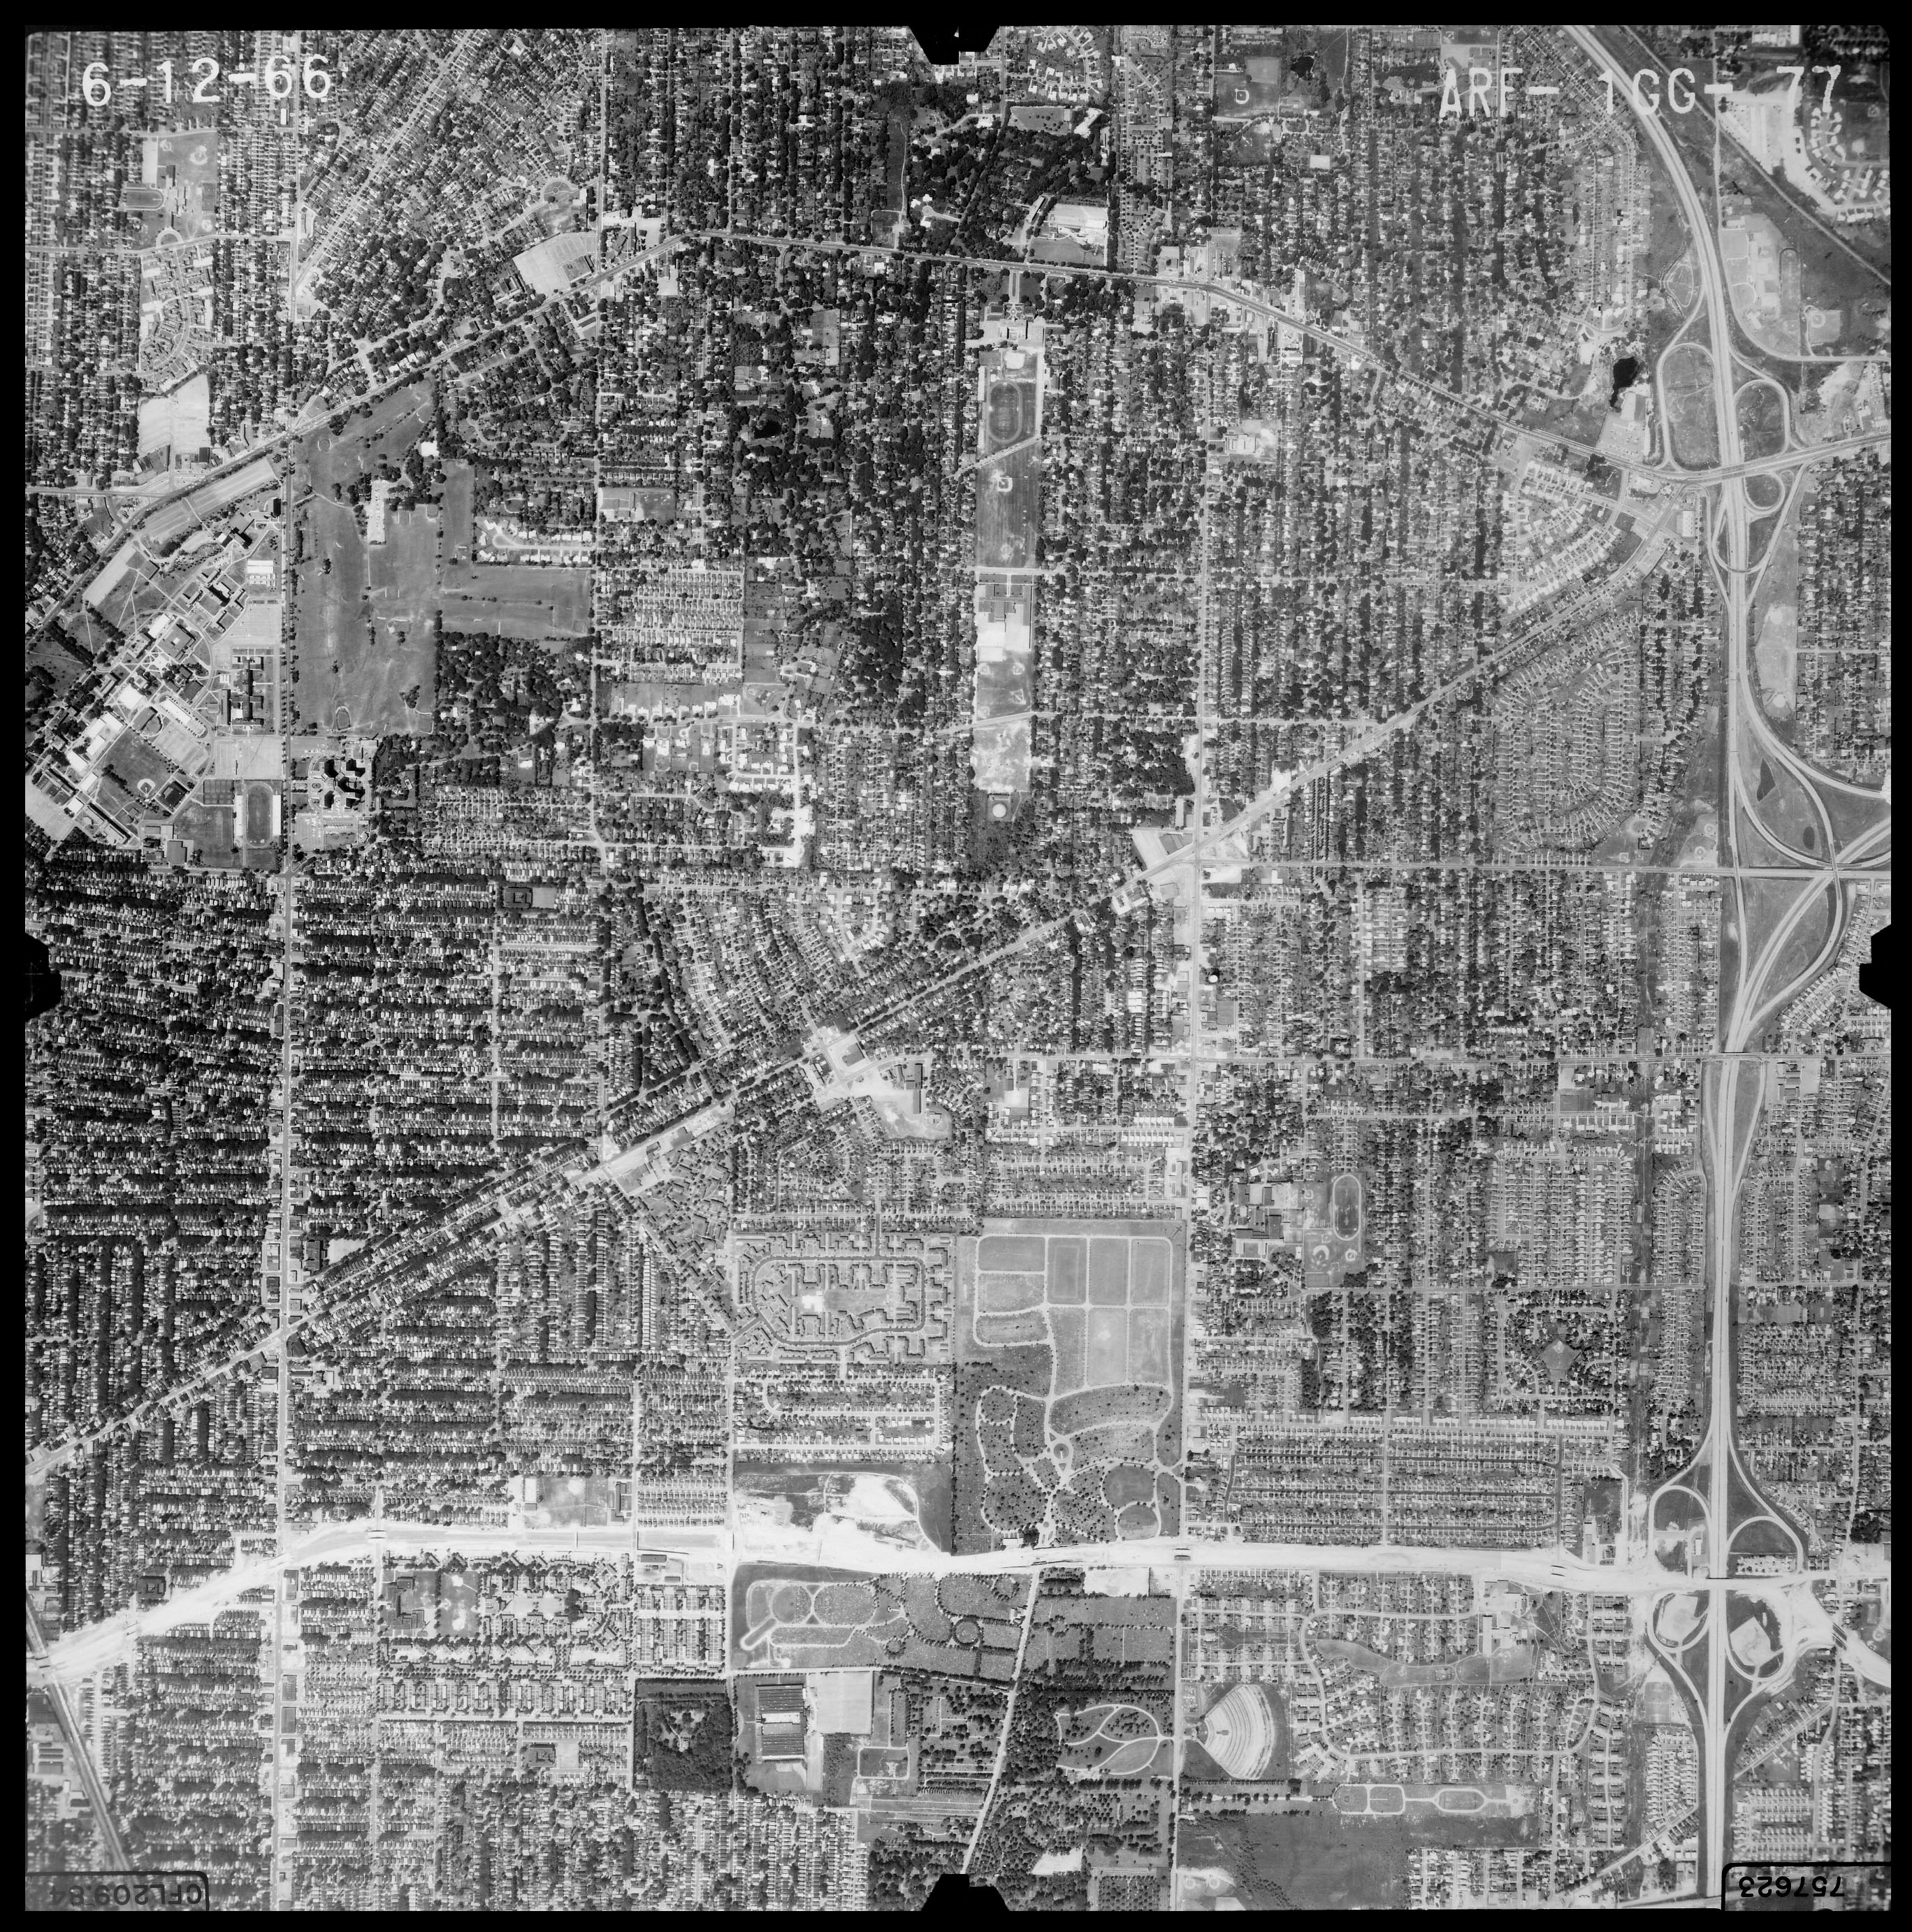 1966 aerial photo showing UB South campus